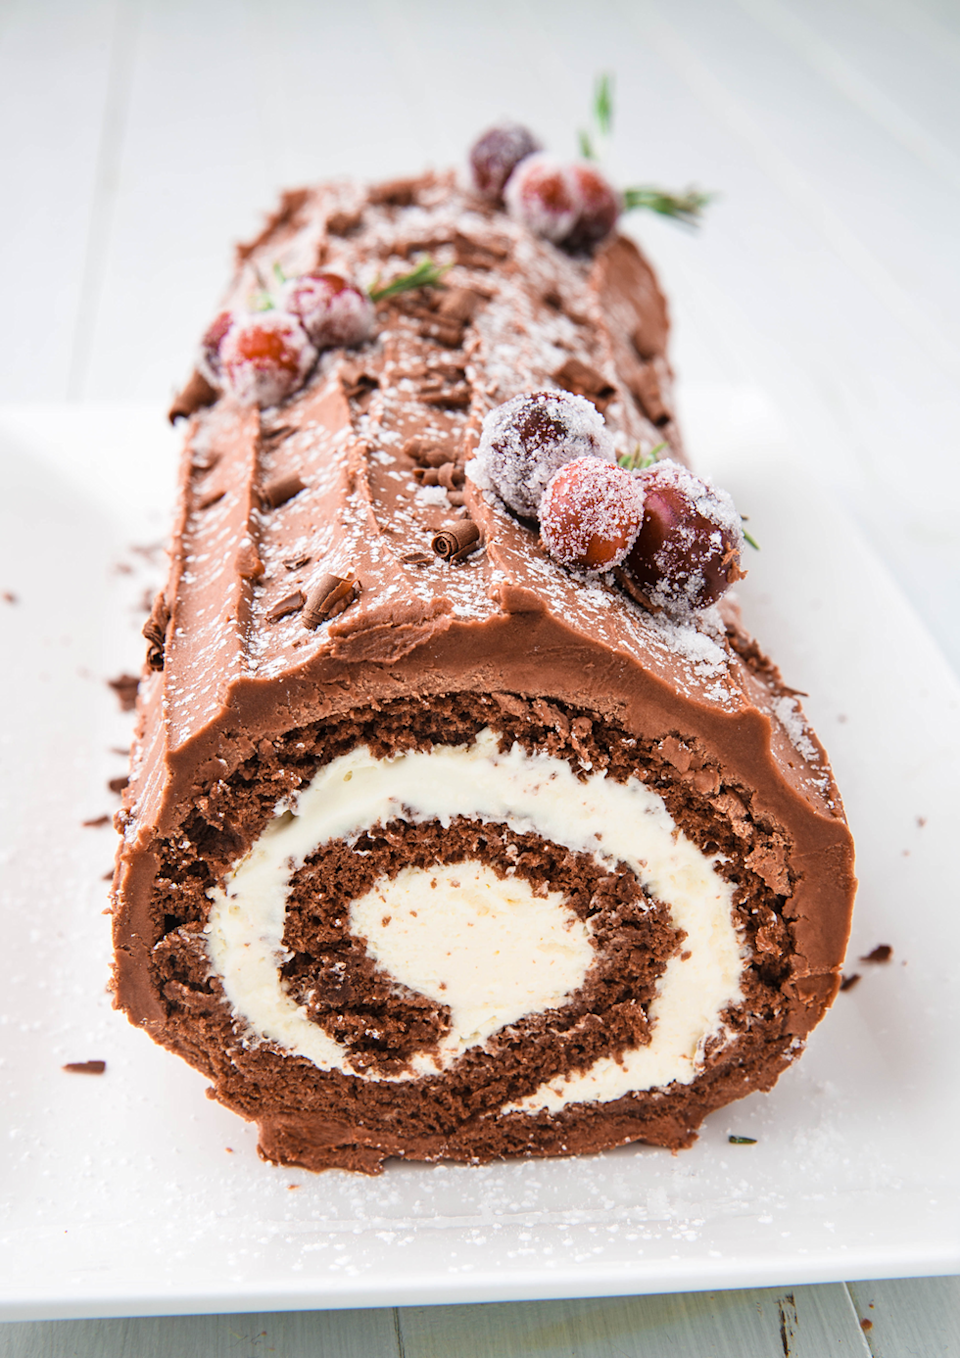 """<p>This Christmas favorite tastes and looks amazing.</p><p>Get the recipe from <a href=""""https://www.delish.com/cooking/recipe-ideas/a24276998/buche-de-noel-yule-log-cake-recipe/"""" rel=""""nofollow noopener"""" target=""""_blank"""" data-ylk=""""slk:Delish"""" class=""""link rapid-noclick-resp"""">Delish</a>.</p>"""